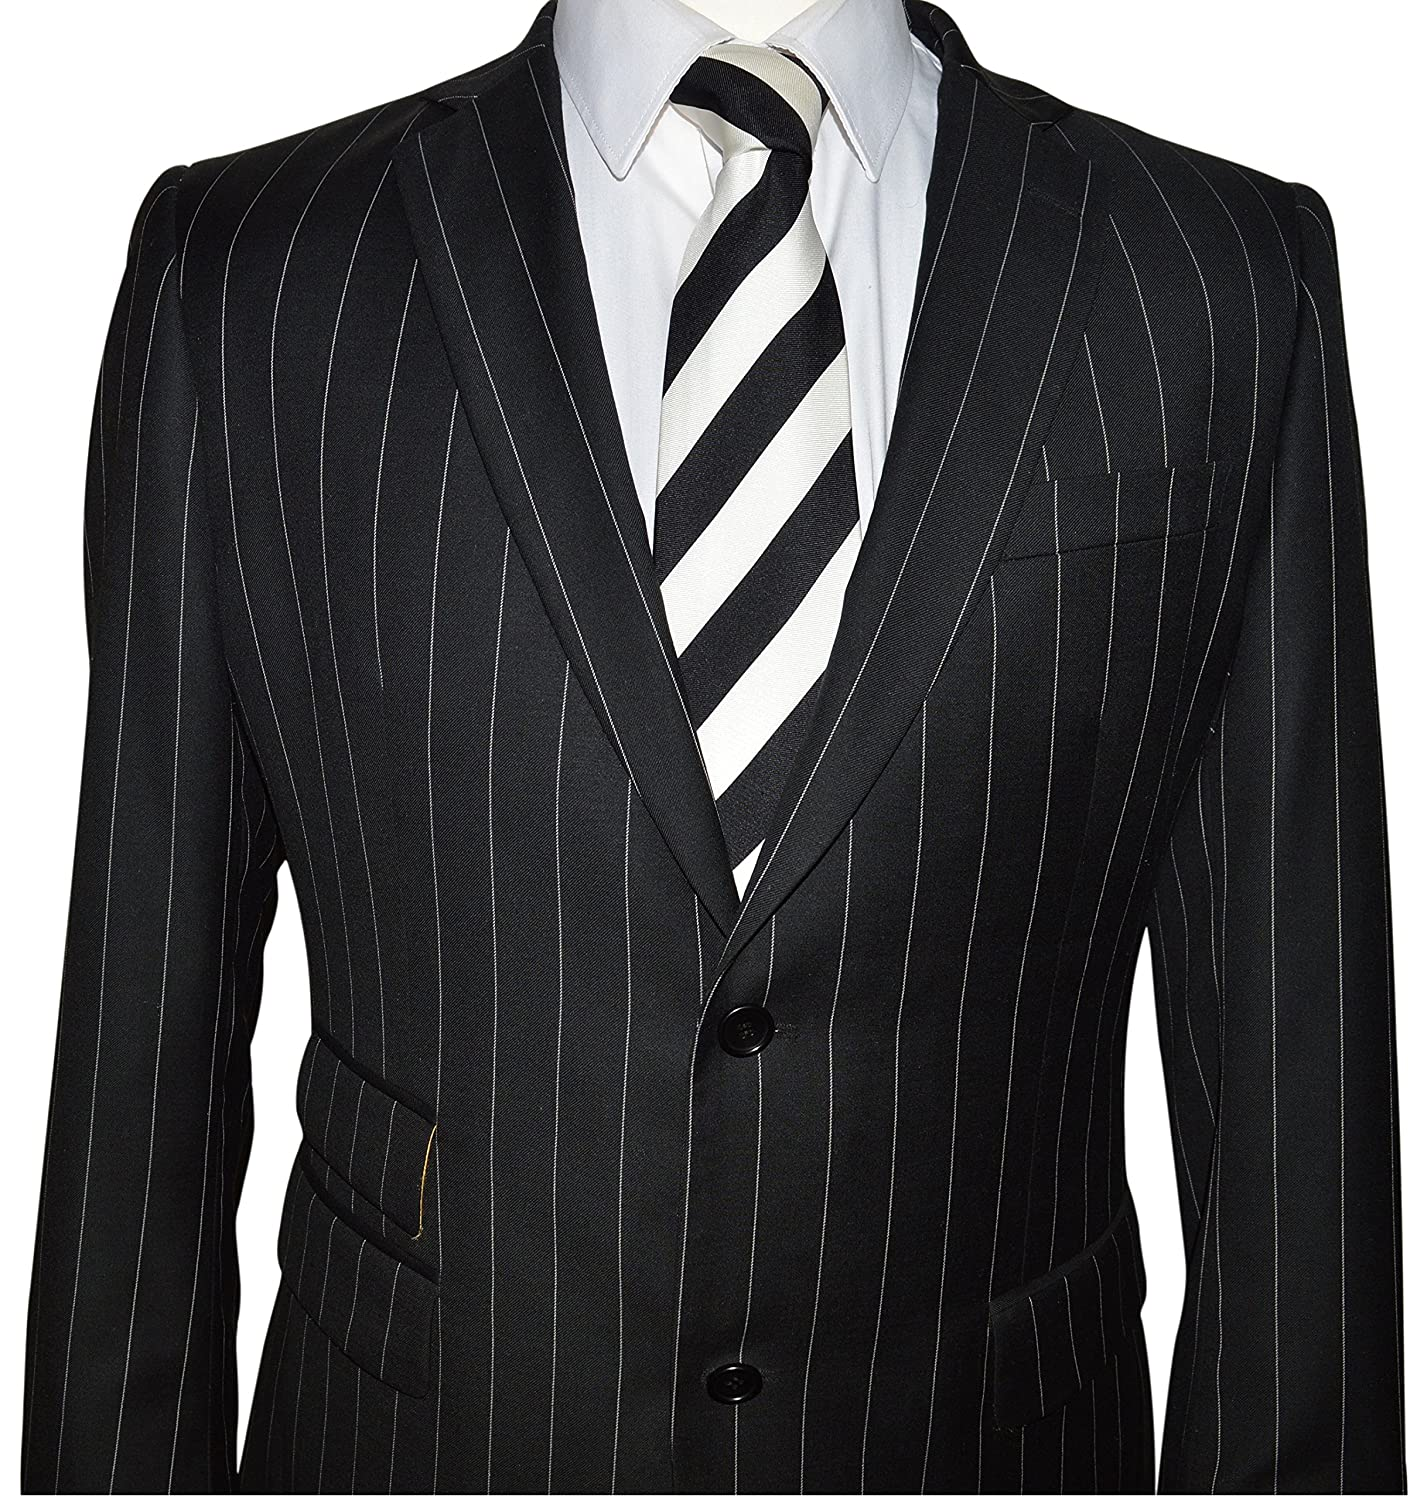 Find great deals on eBay for black and white stripe jacket. Shop with confidence.